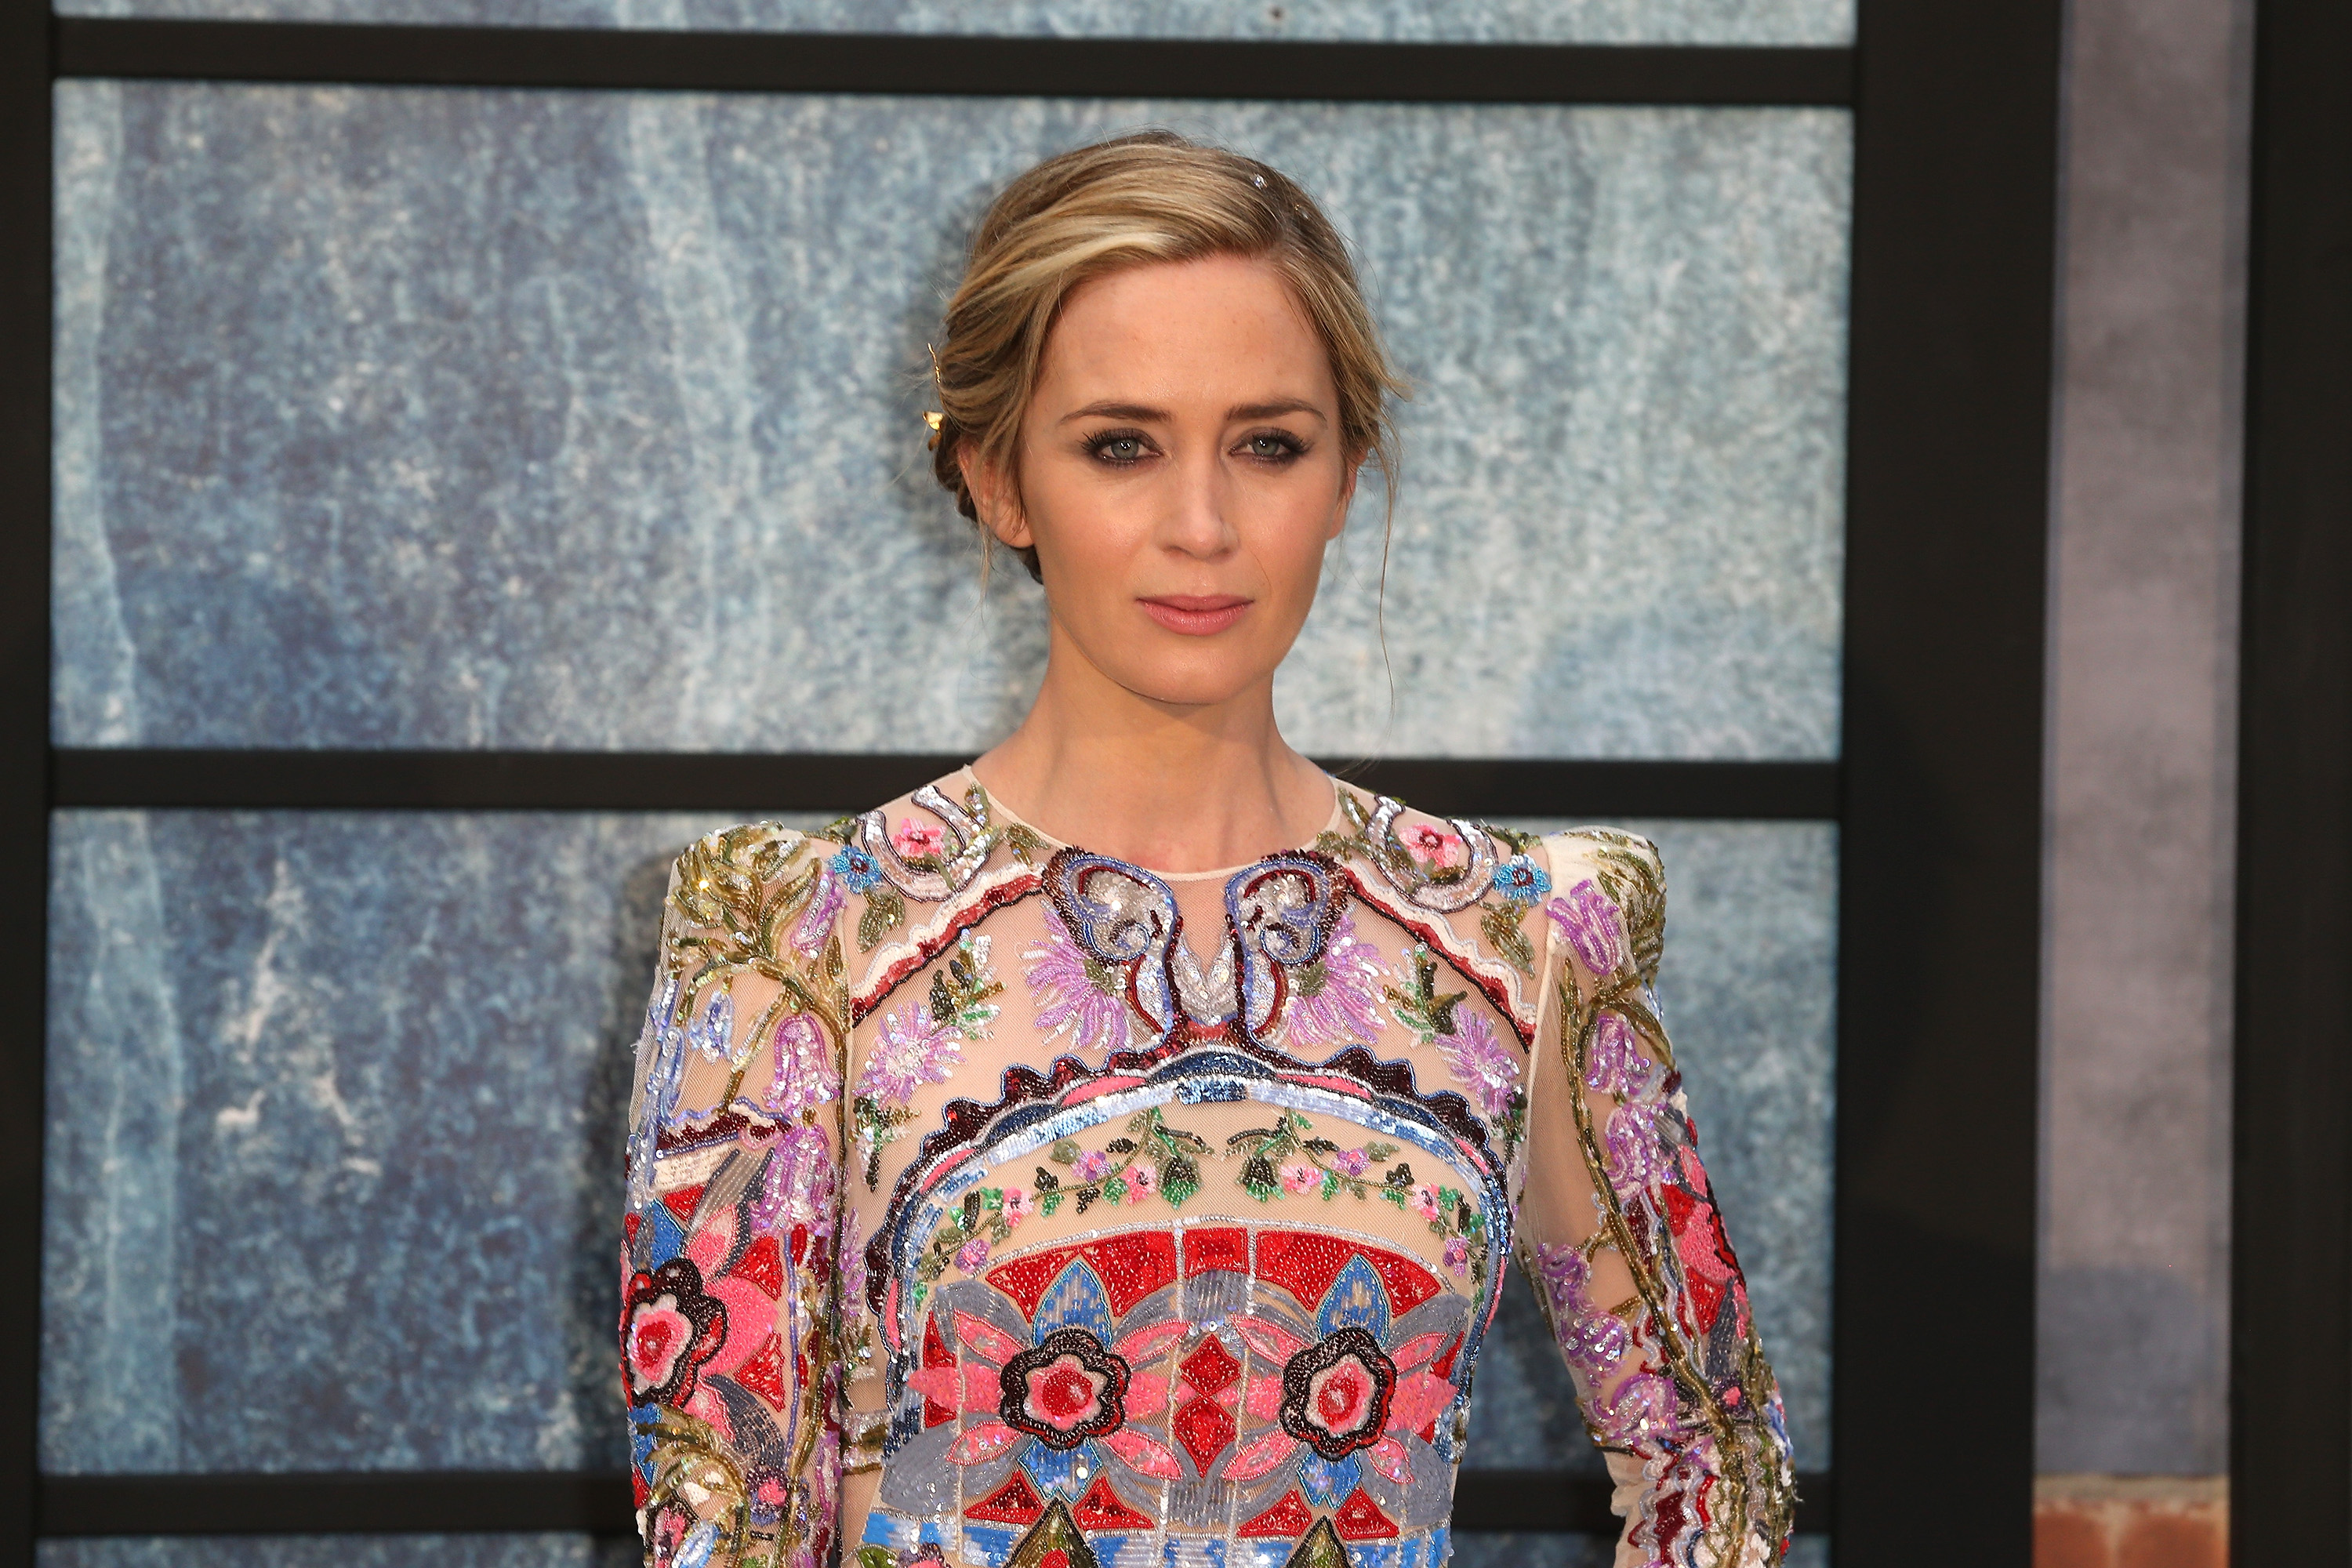 Emily Blunt looked like a floral goddess in her hippie chic premiere gown